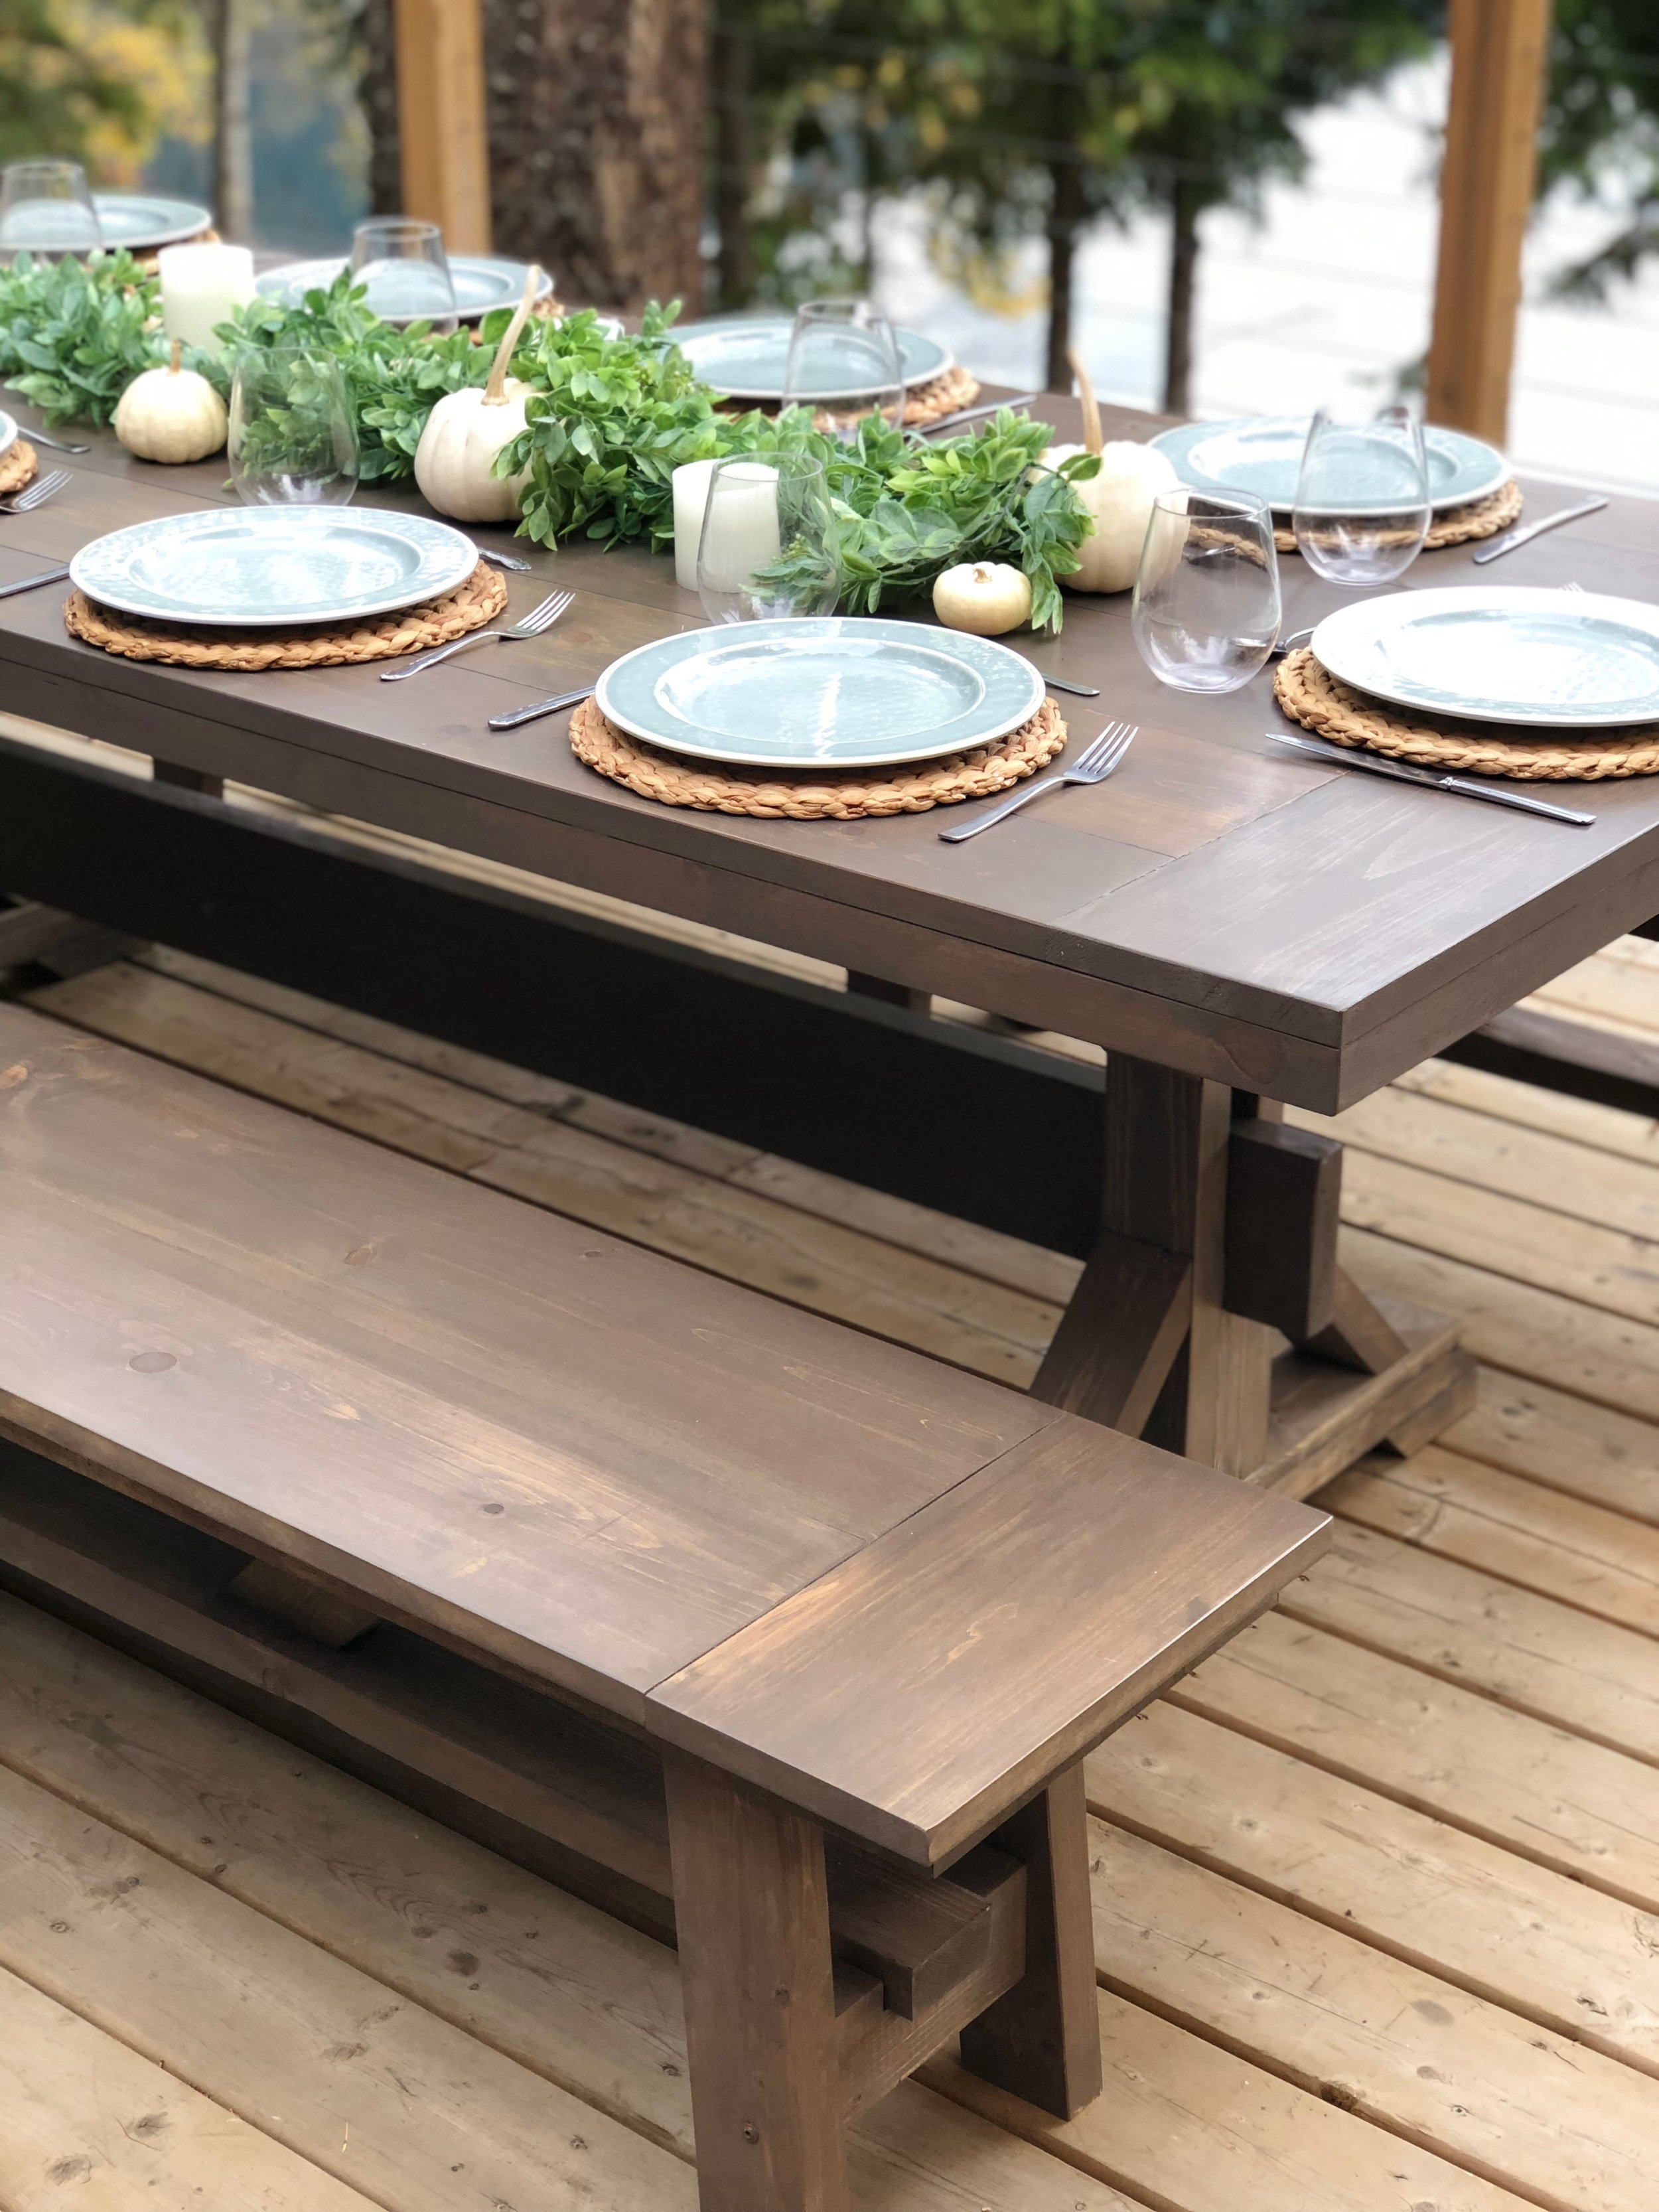 """Rates - For a 24 hour rental8' x 40"""" Trestle Table - $95/table8' x 14"""" Bench - $45/bench8' x 8' Pergola - First section: $550 (includes set up and take down, delivery is extra). Each section after that $350Delivery for a fee - please contact us for pricing.If a site visit is required, there will be a charge for site visits. Please contact us for pricing.Sorry, no pick ups on Rentals."""